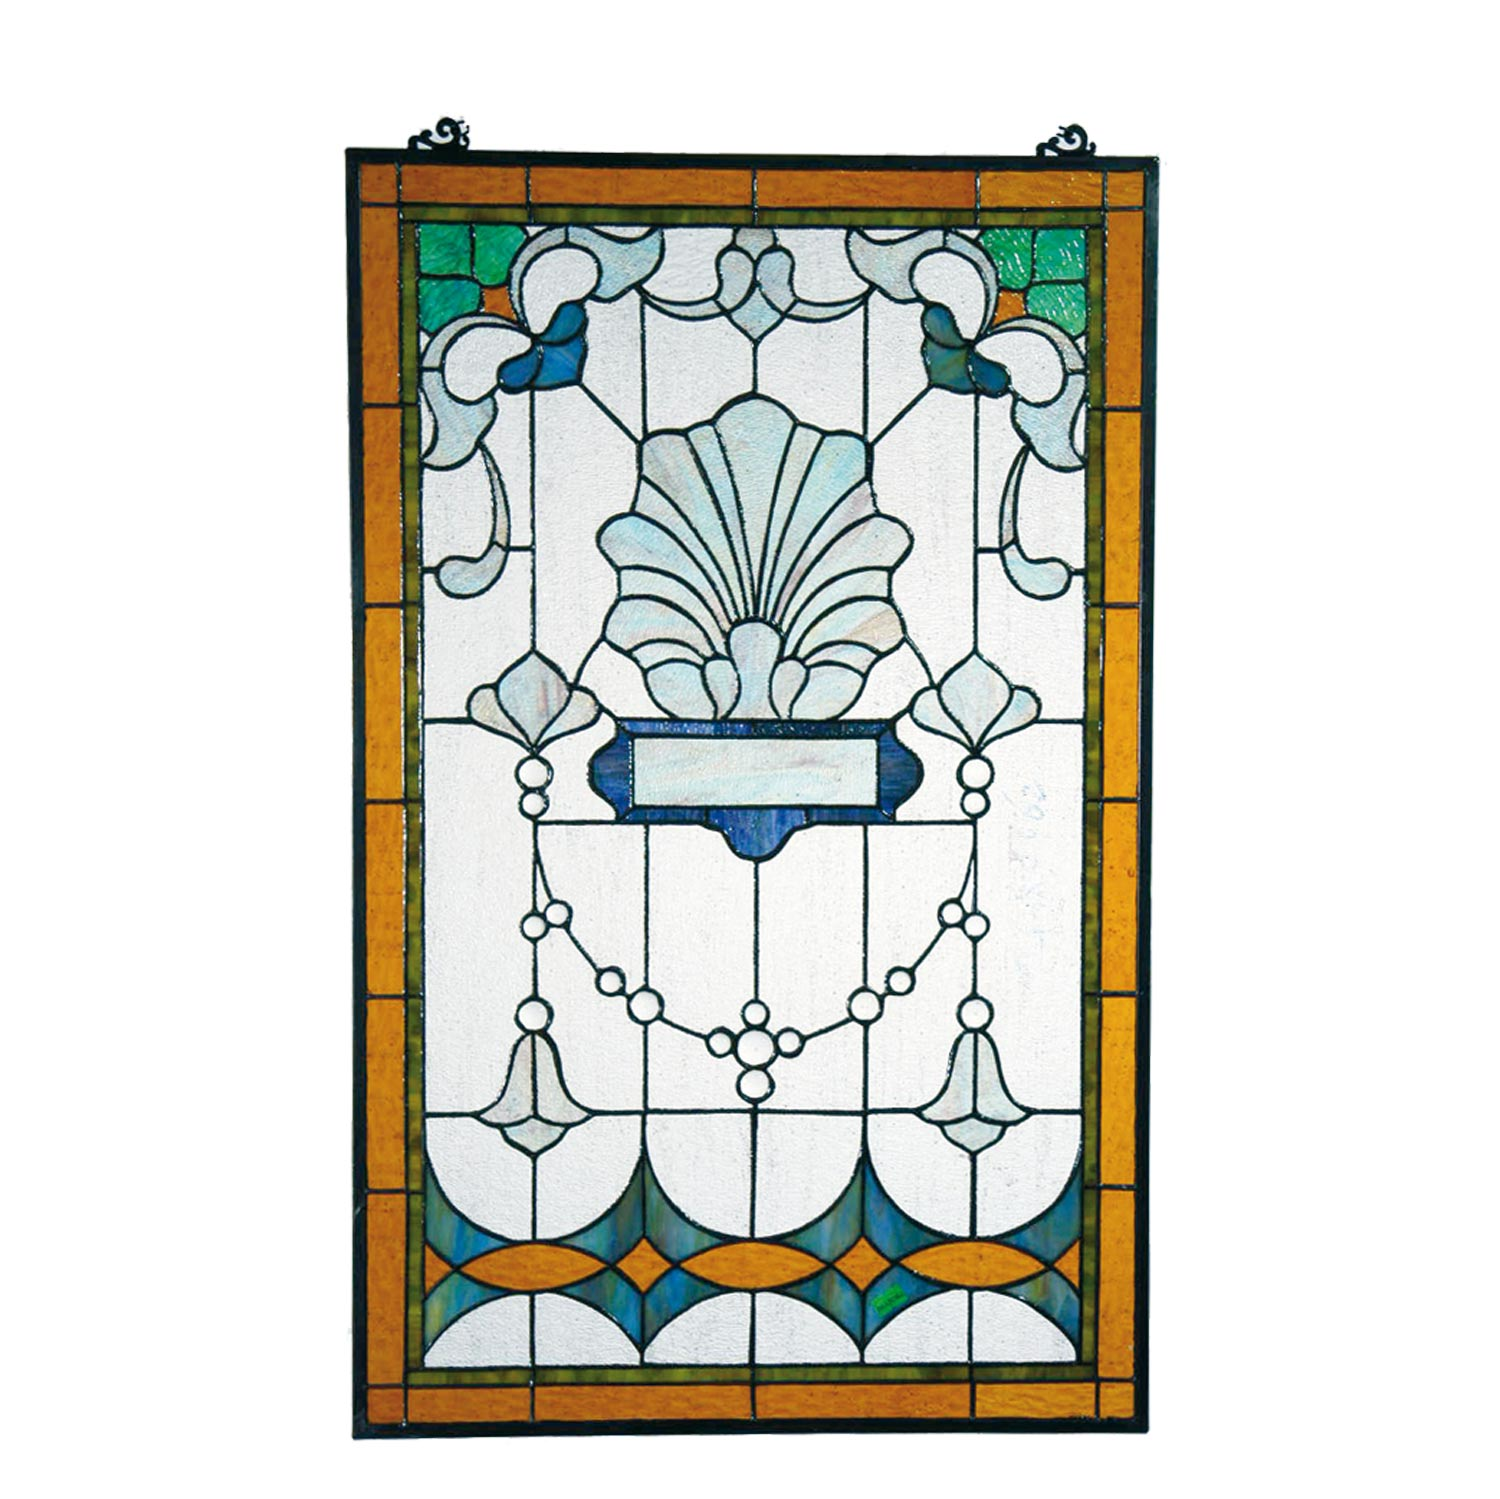 Fenster Lampen Clayre And Eef 5ll 5394 Tiffany Fenster 81x51